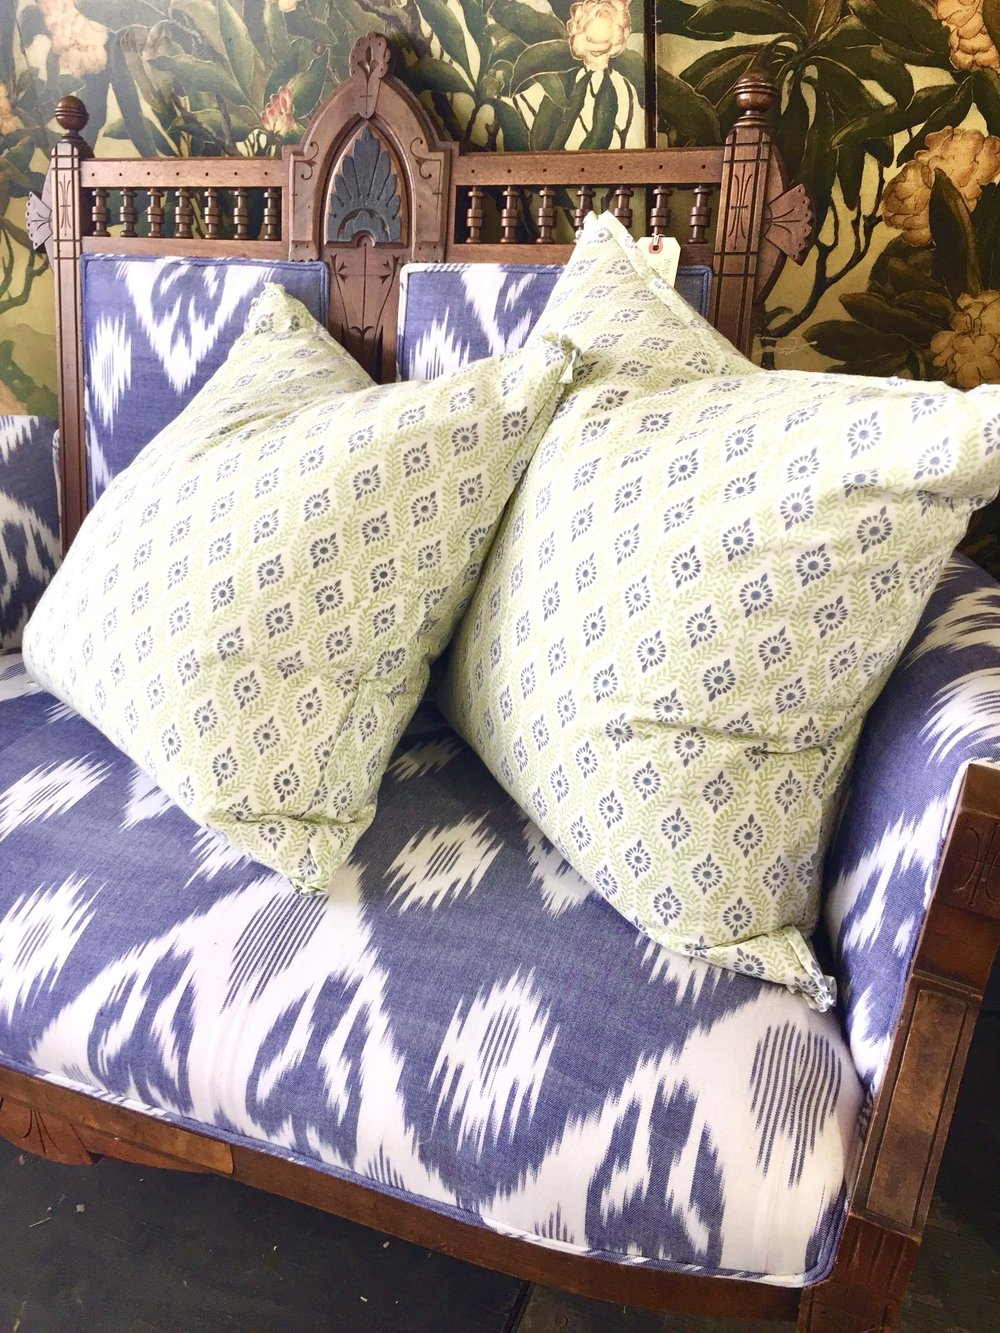 Cotton print textiles made into pillows and upholstered goods seen at Round Top, TX at Arbor Antiques from Mela and Roam #pillows #antiques #roundtop #textiles